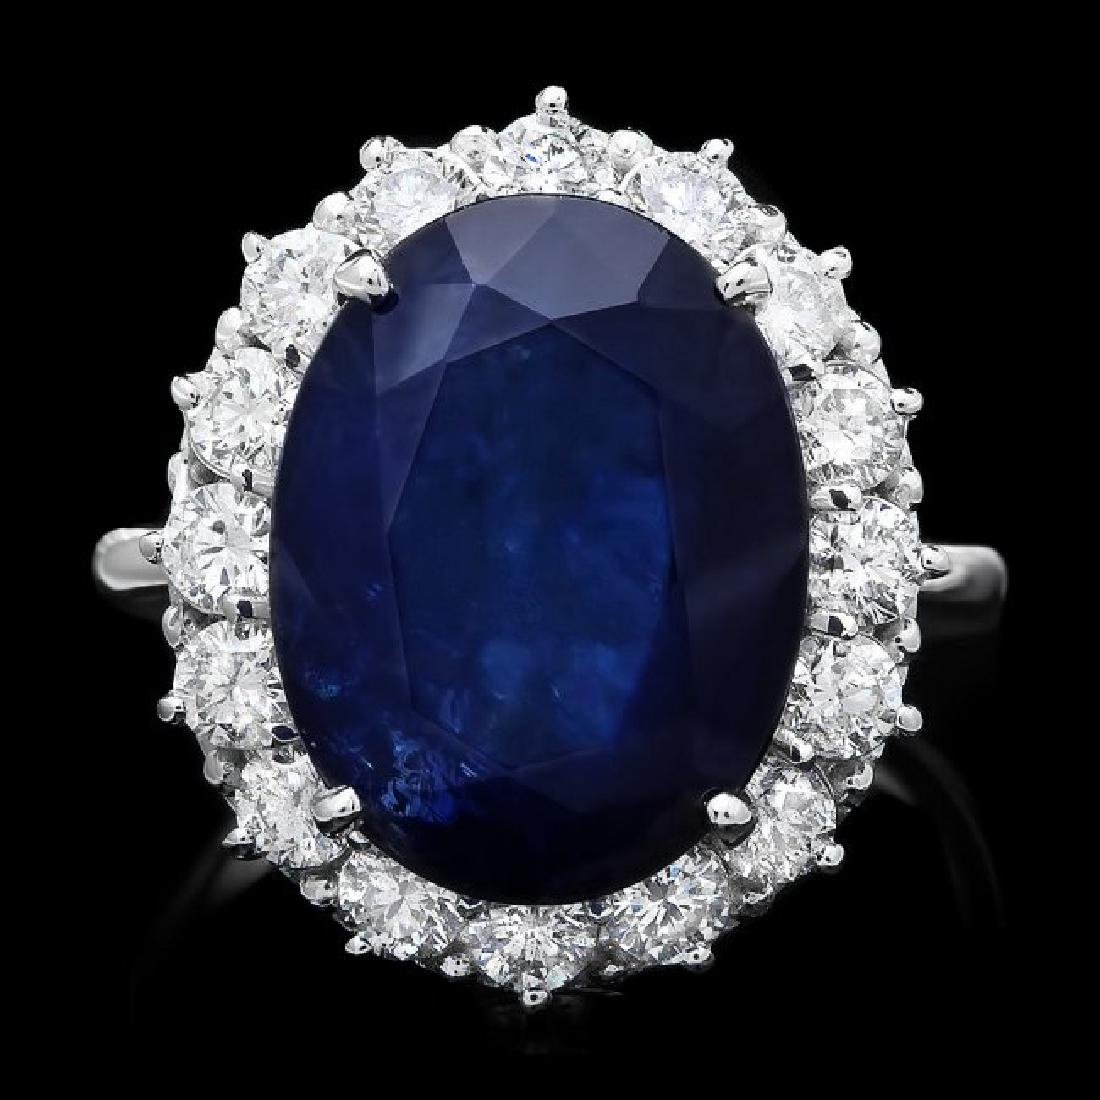 14k Gold 12.17ct Sapphire 1.48ct Diamond Ring